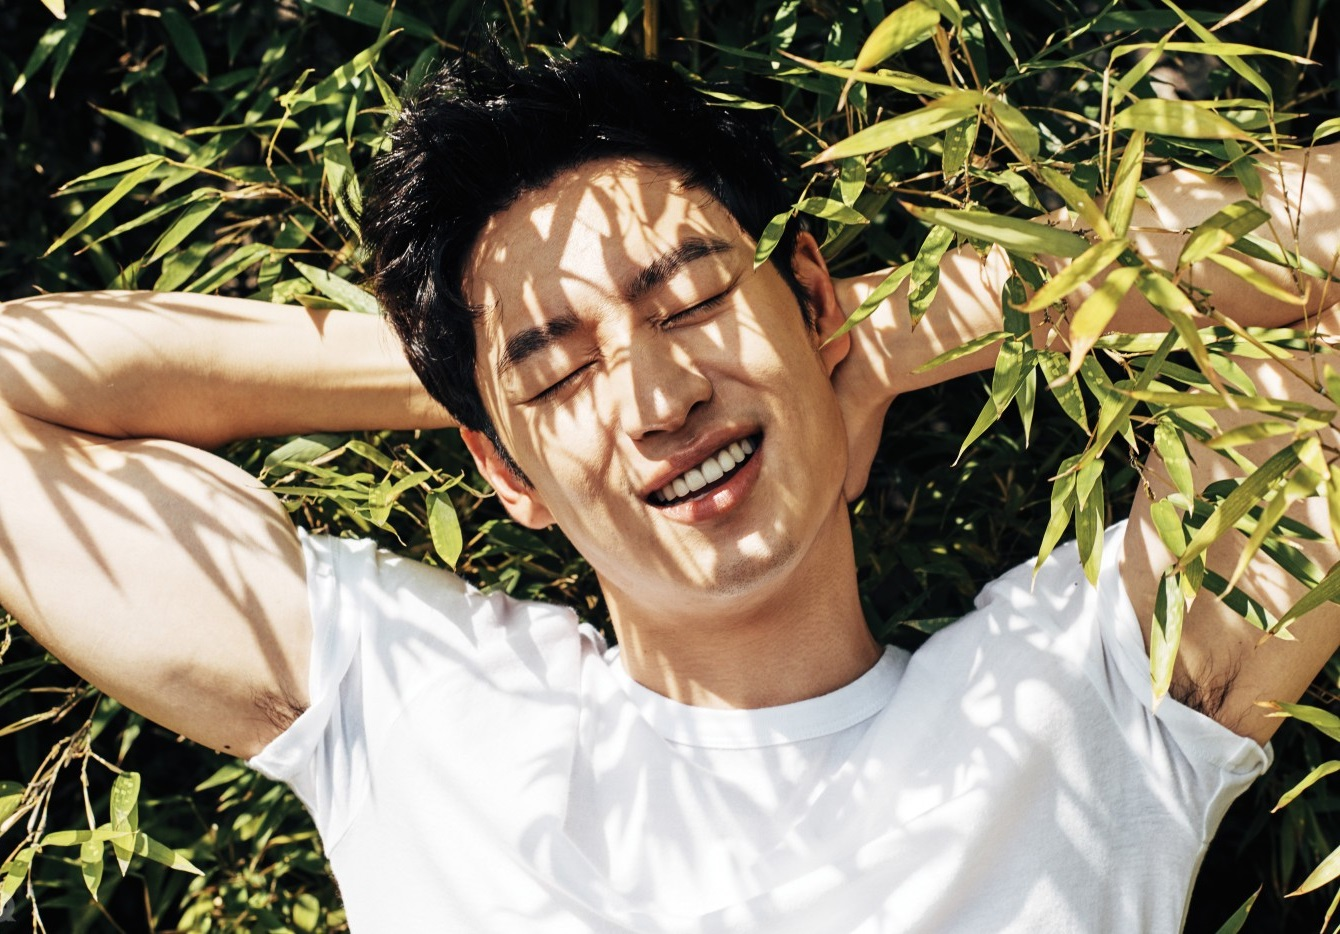 Lee Je Hoon Gains Attention Online For His Sweet Act Of Kindness On The Subway